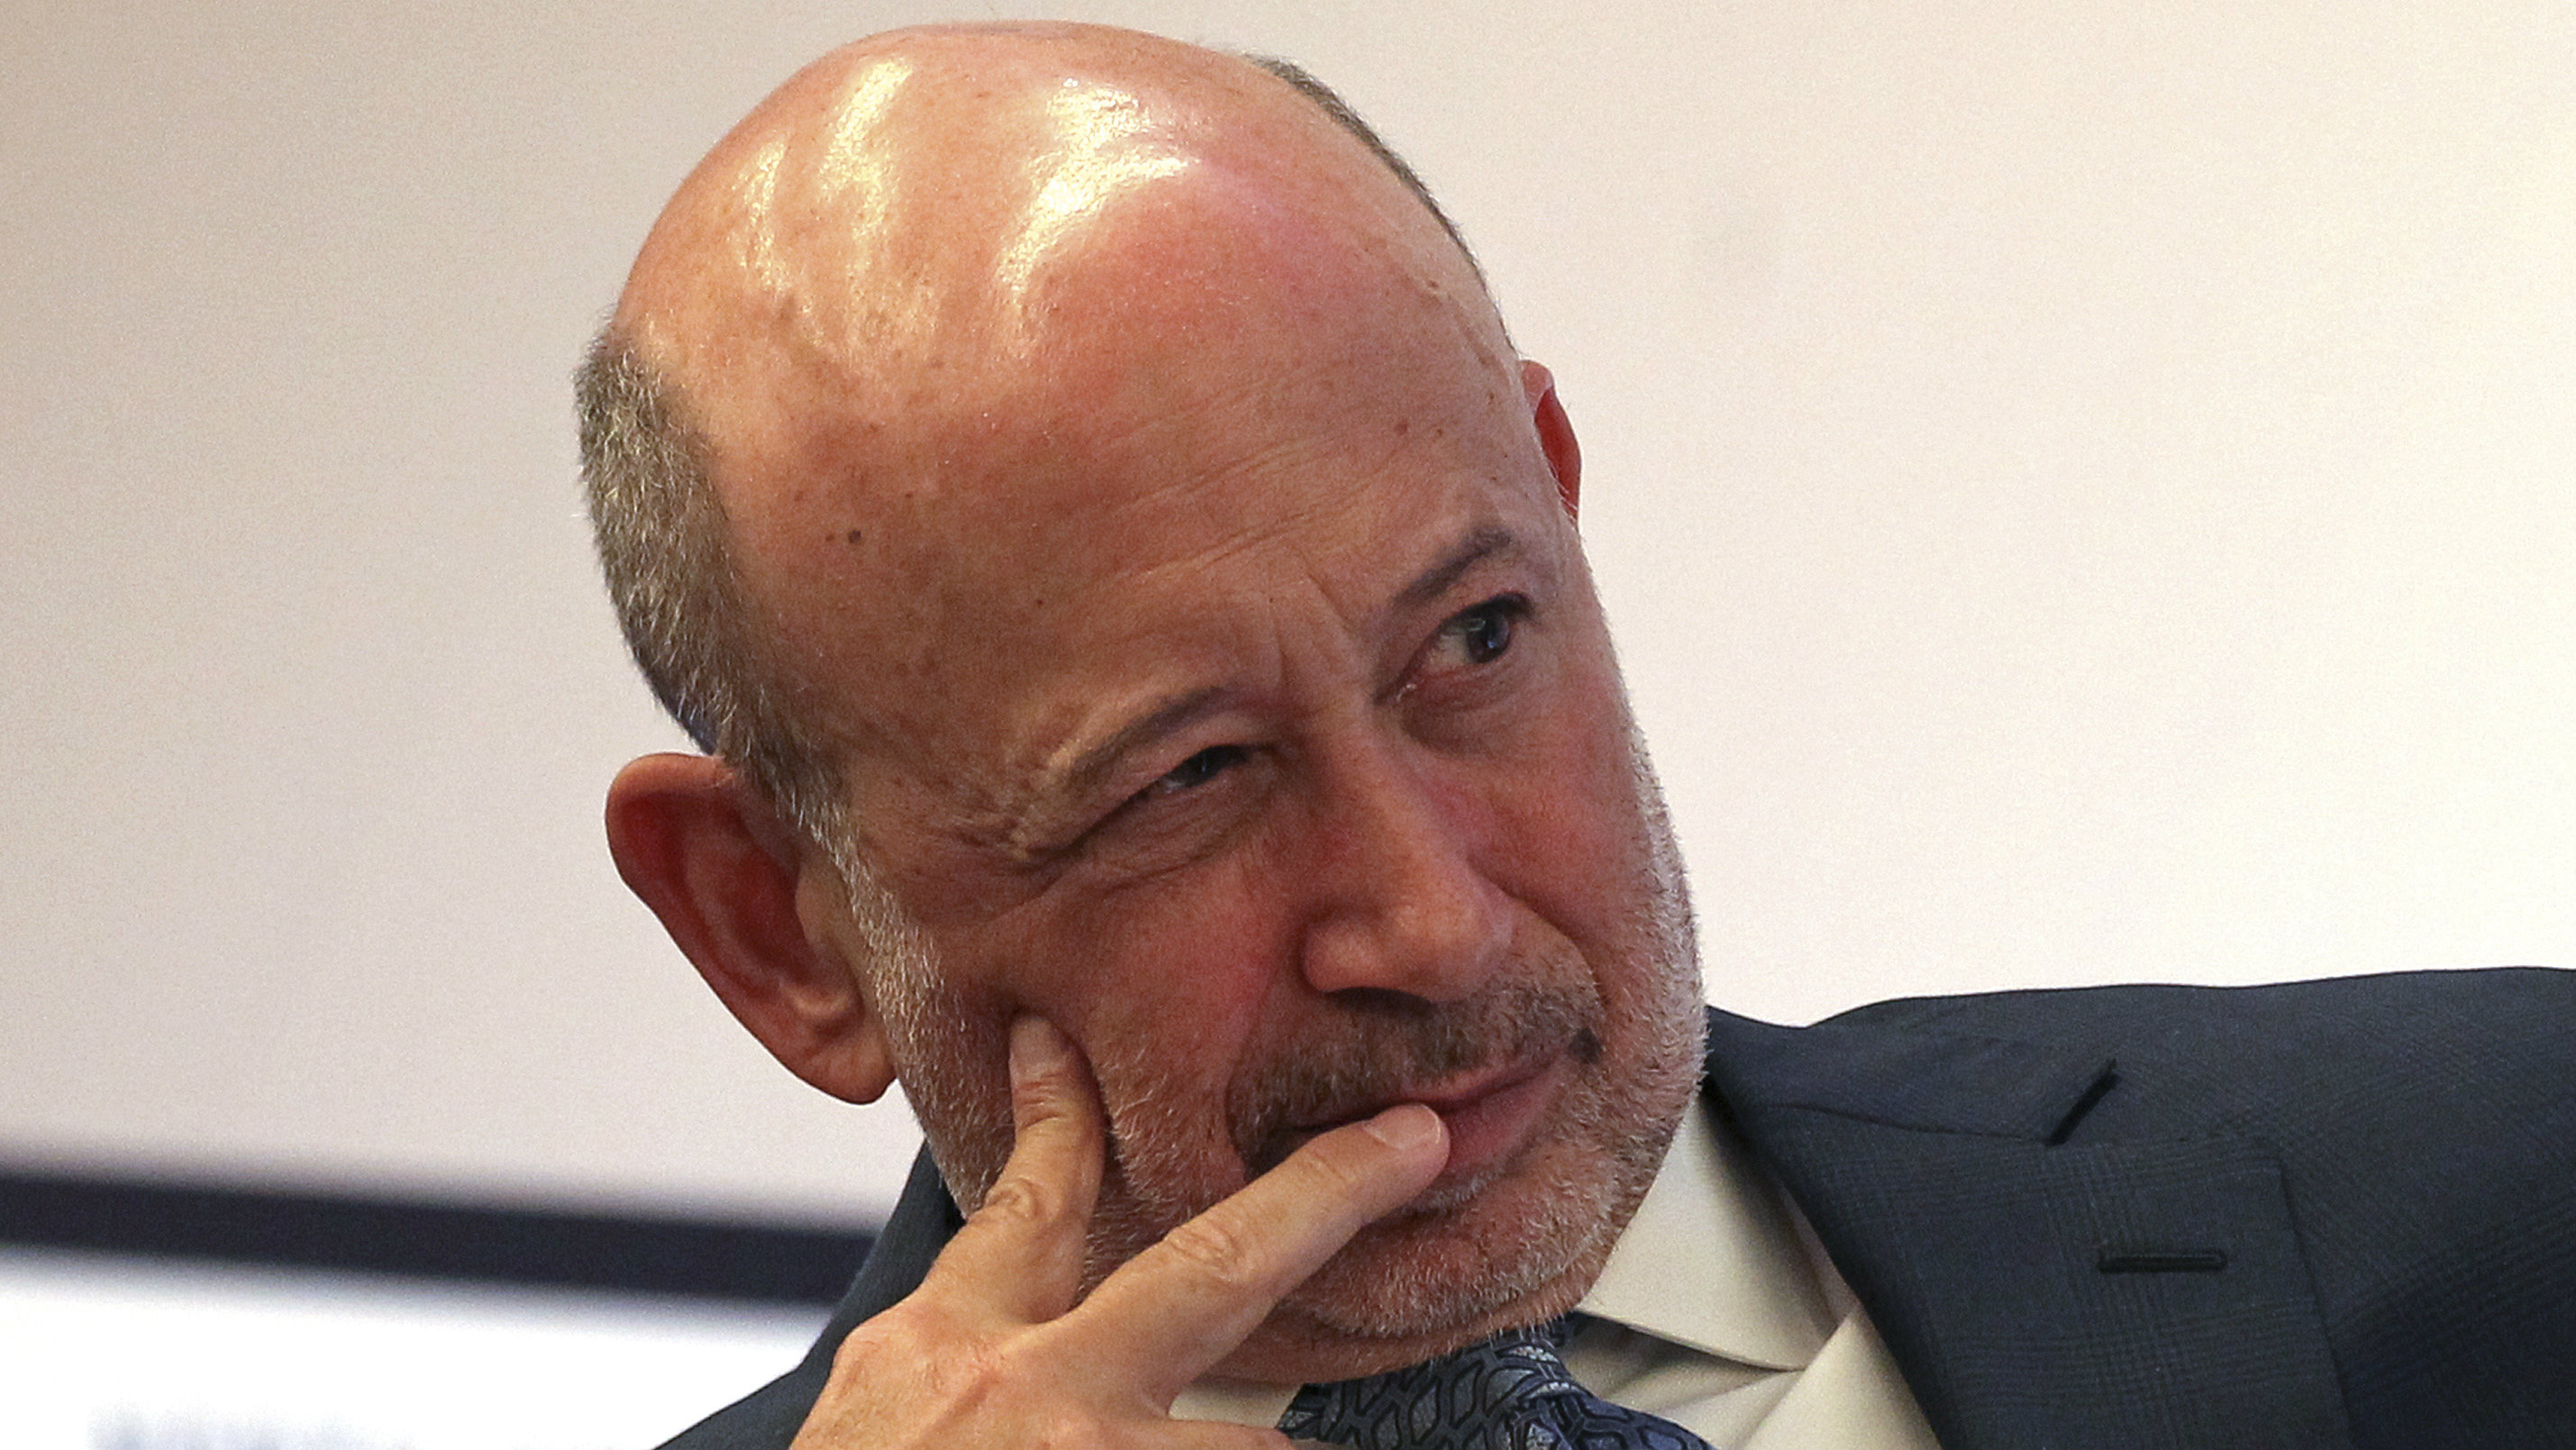 Goldman Sachs Group, Inc. Chairman and Chief Executive Lloyd Blankfein moderates a panel discussion at the North American Energy Summit in the Manhattan borough of New York, June 10, 2014.